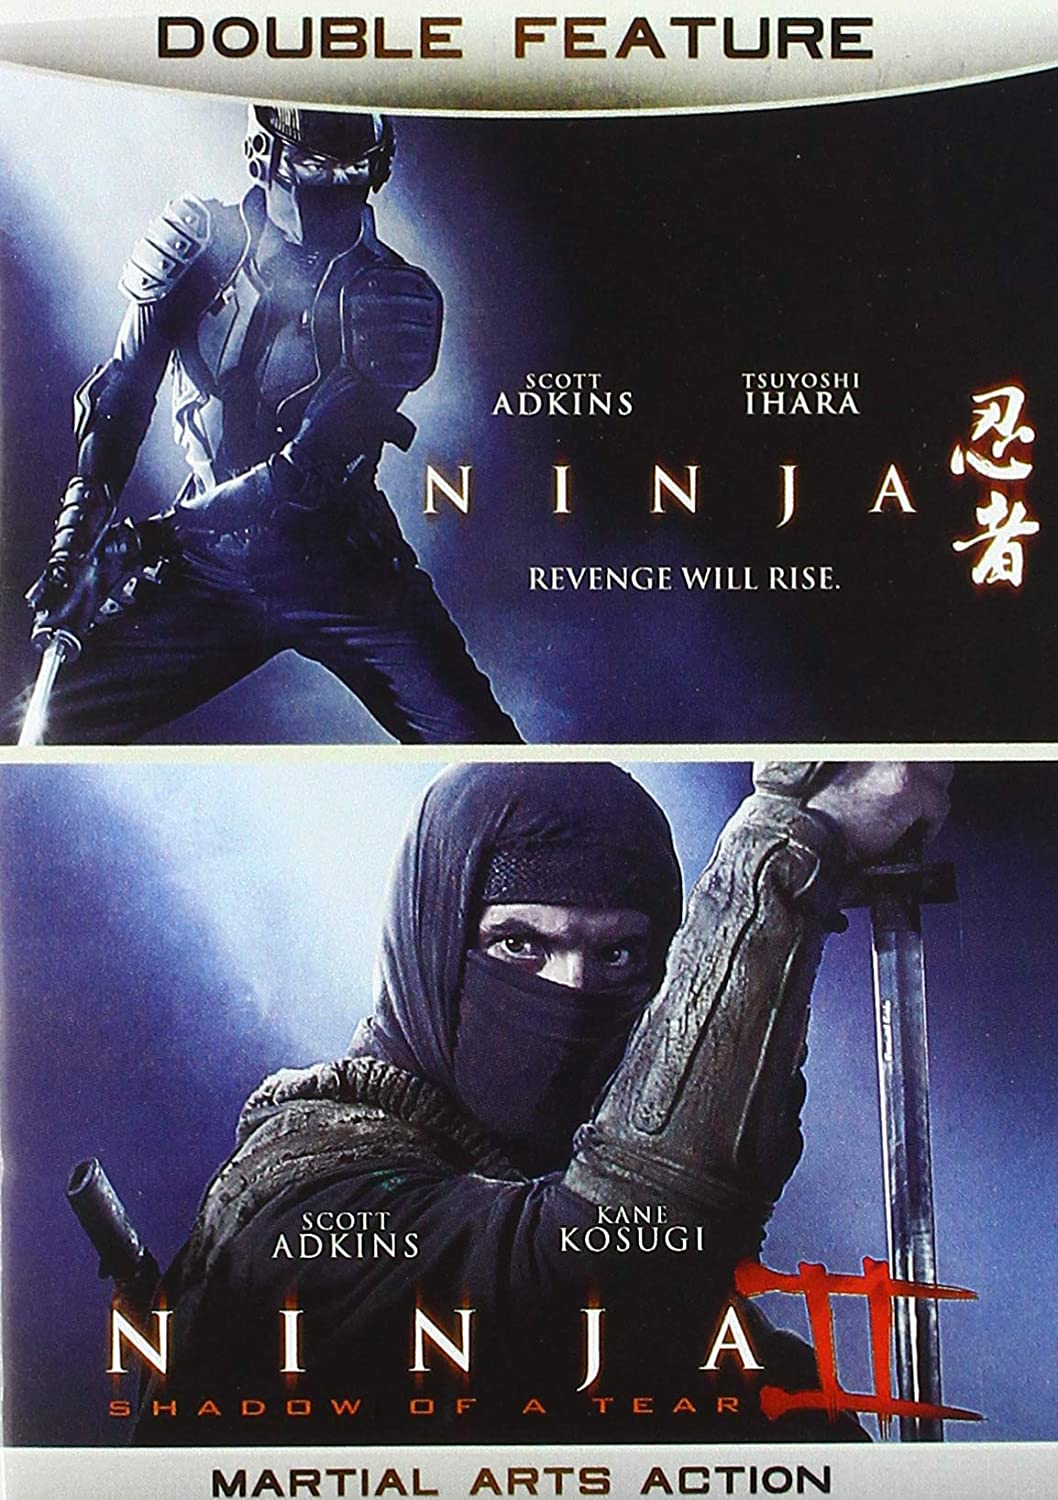 Amazon.com: Ninja Double Feature: Scott Adkins, Double ...